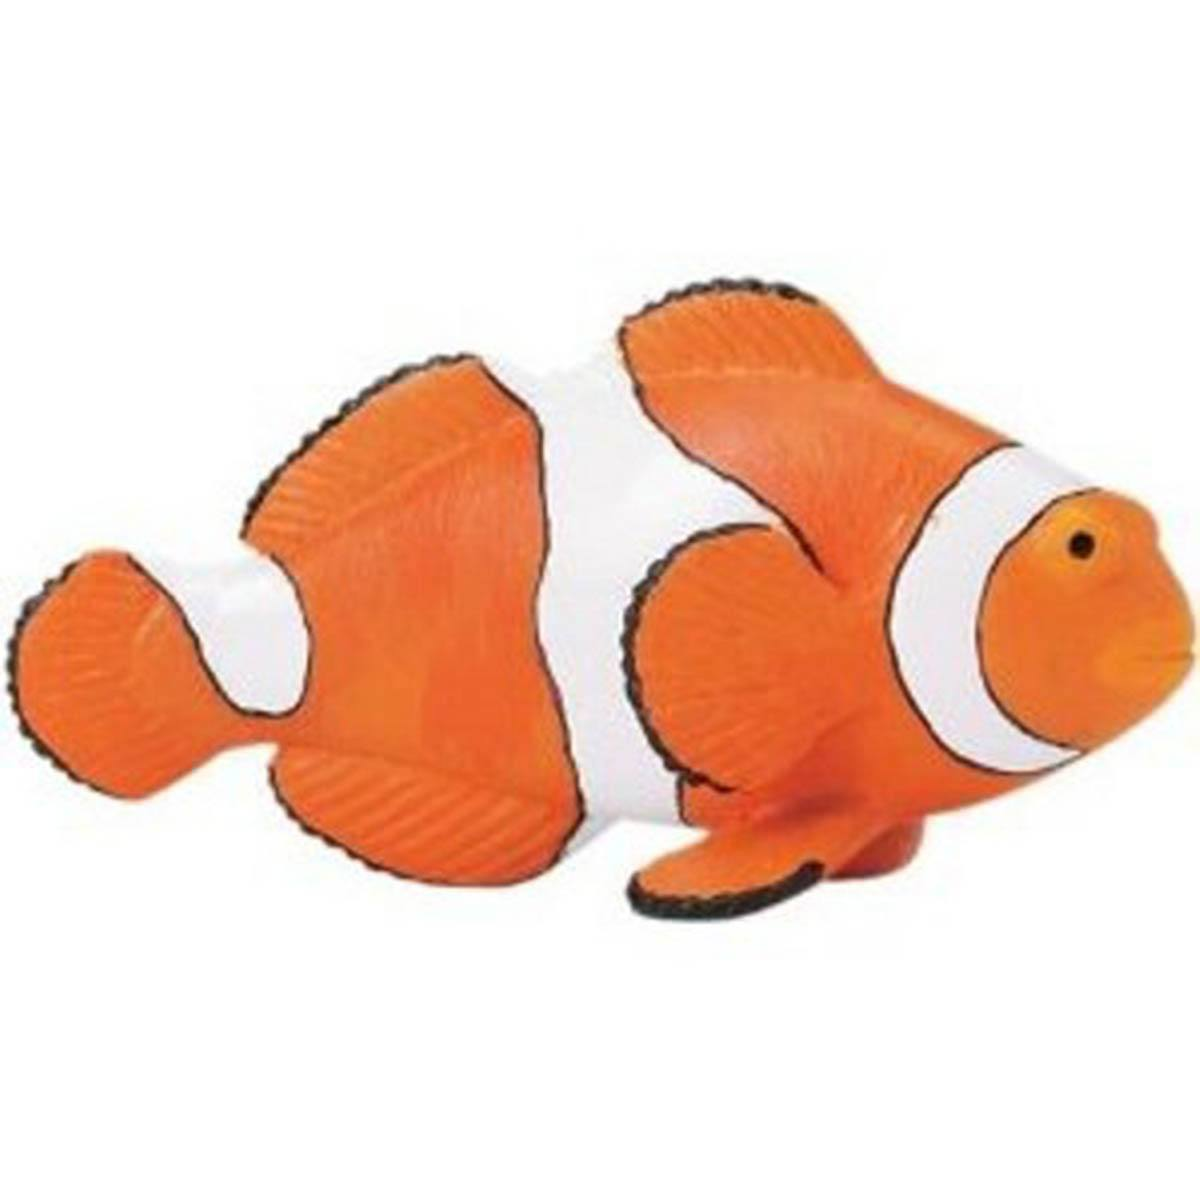 clown fish animal figure safari ltd kids ocean toys u2013 radar toys